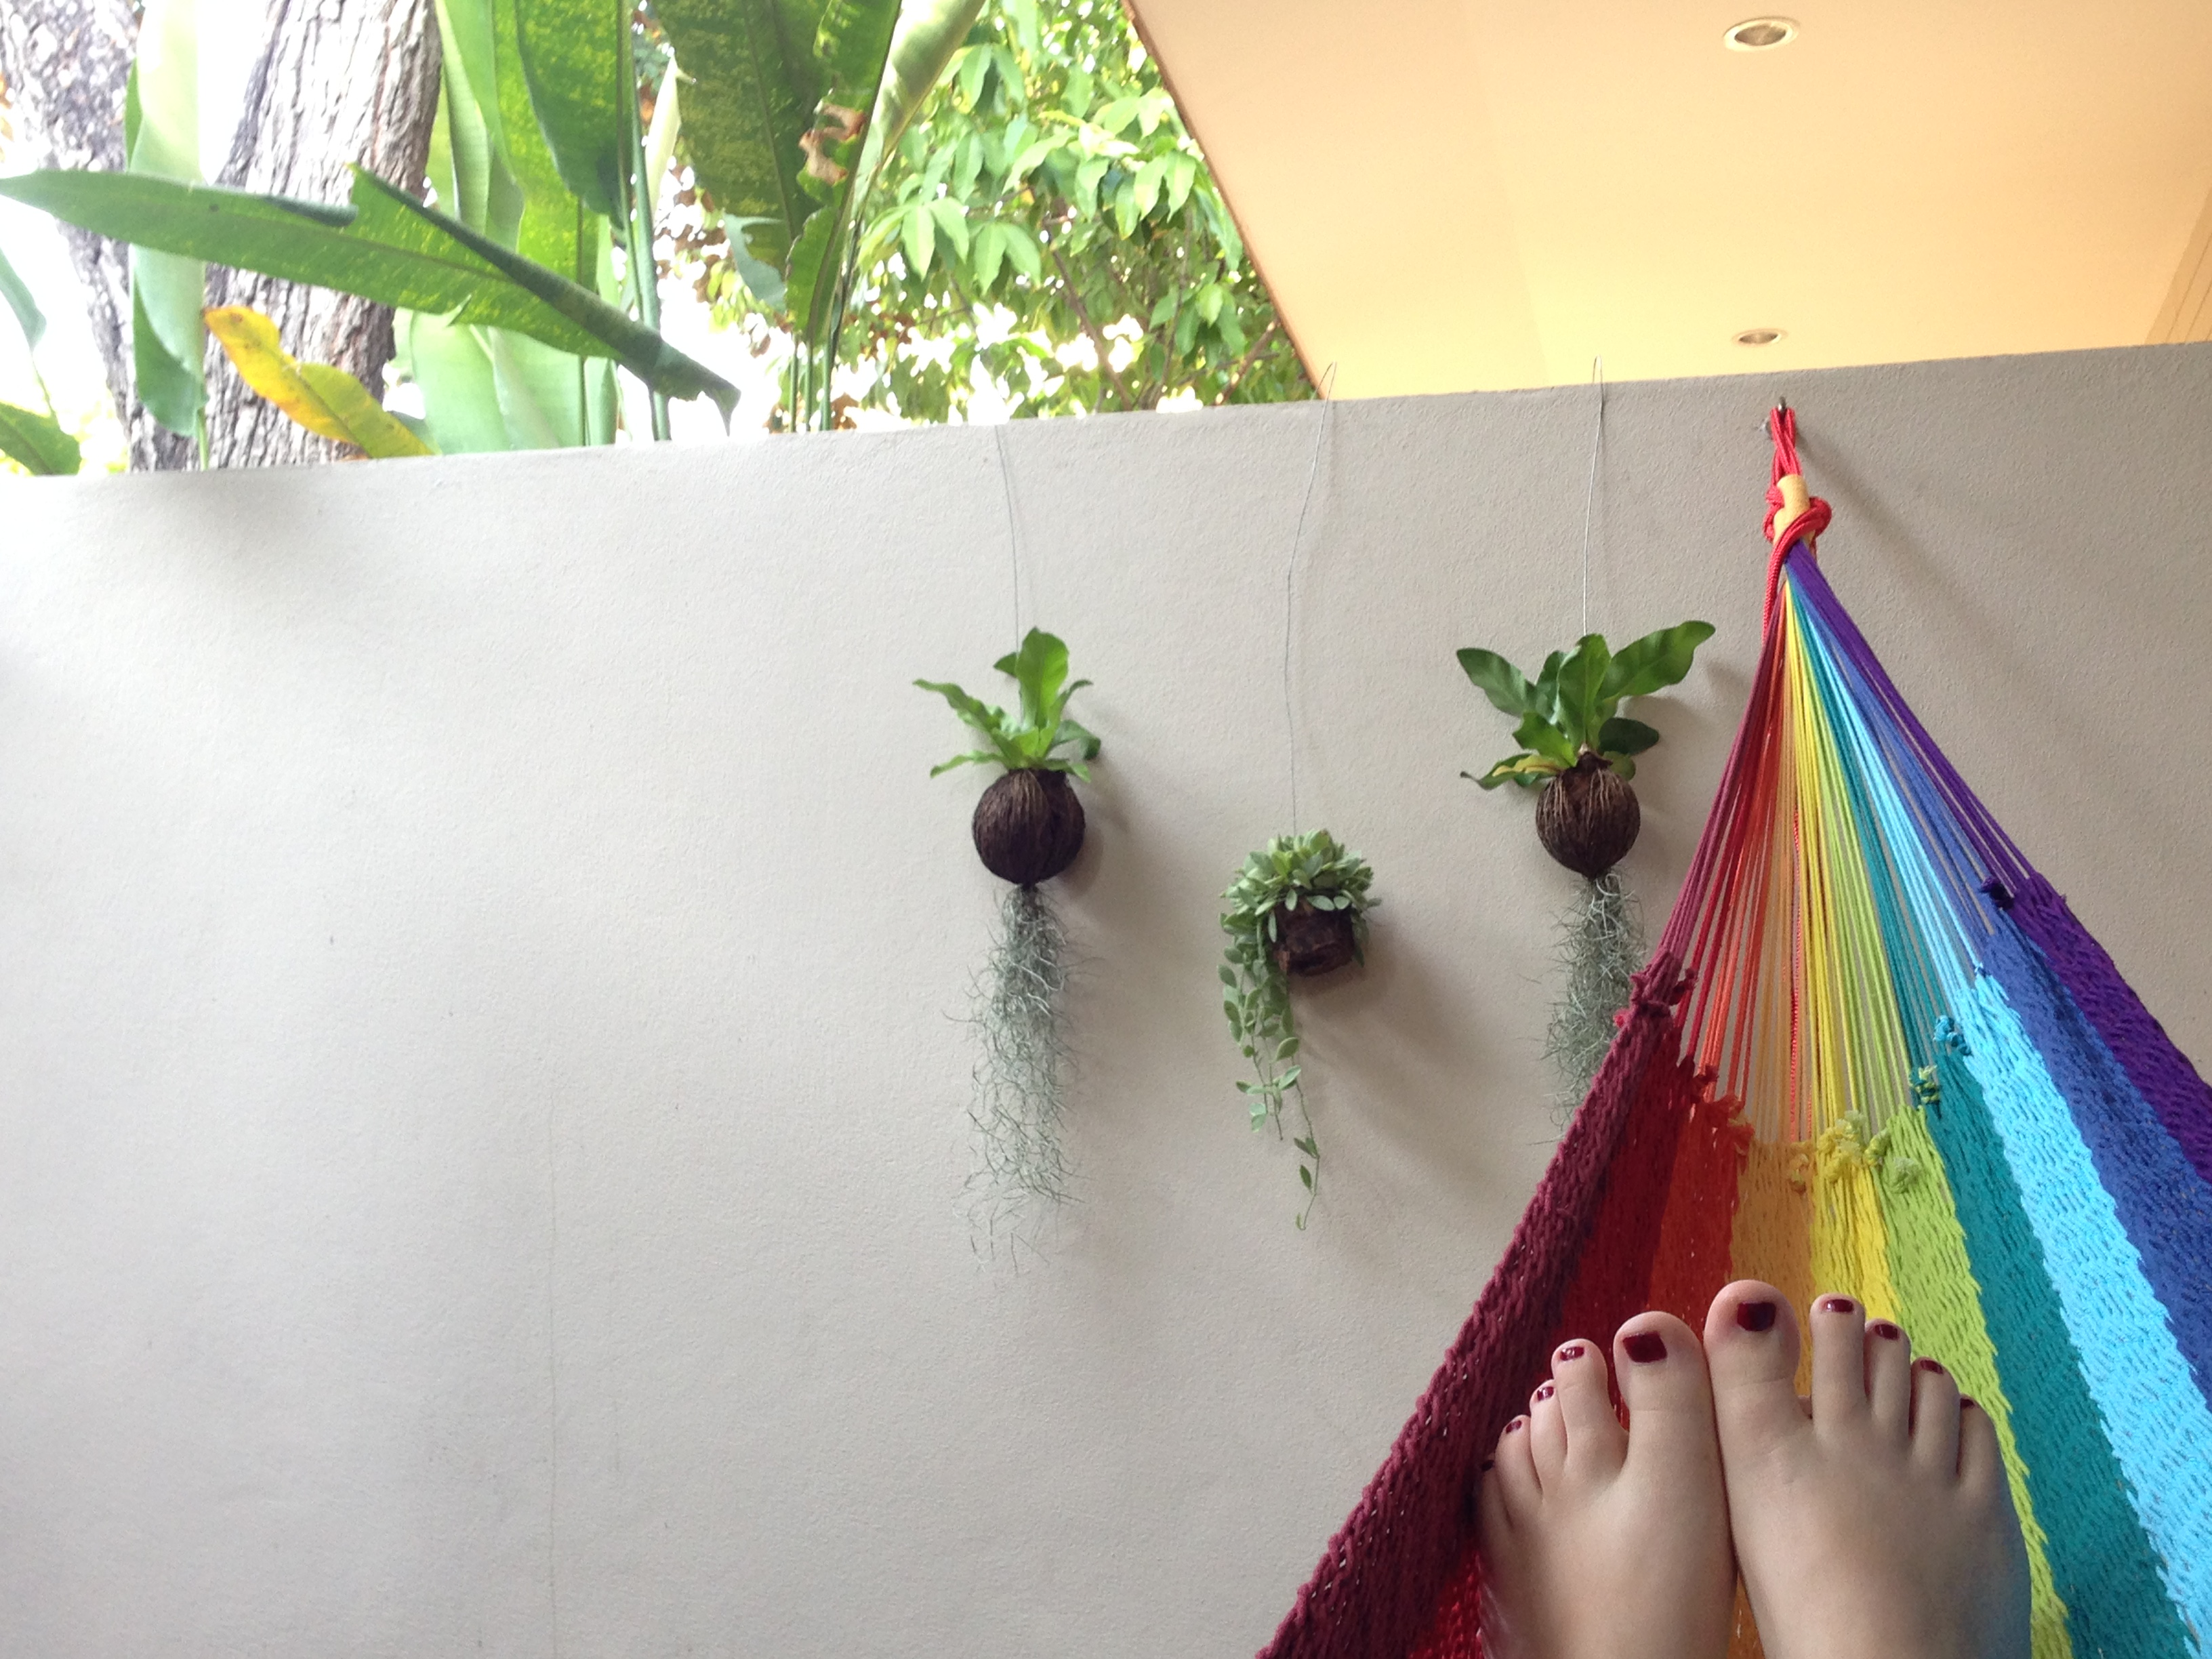 My Chiang Mai Daily Life: New House, Work in a Handful of Countries, Christmas, New Year and a Hammock